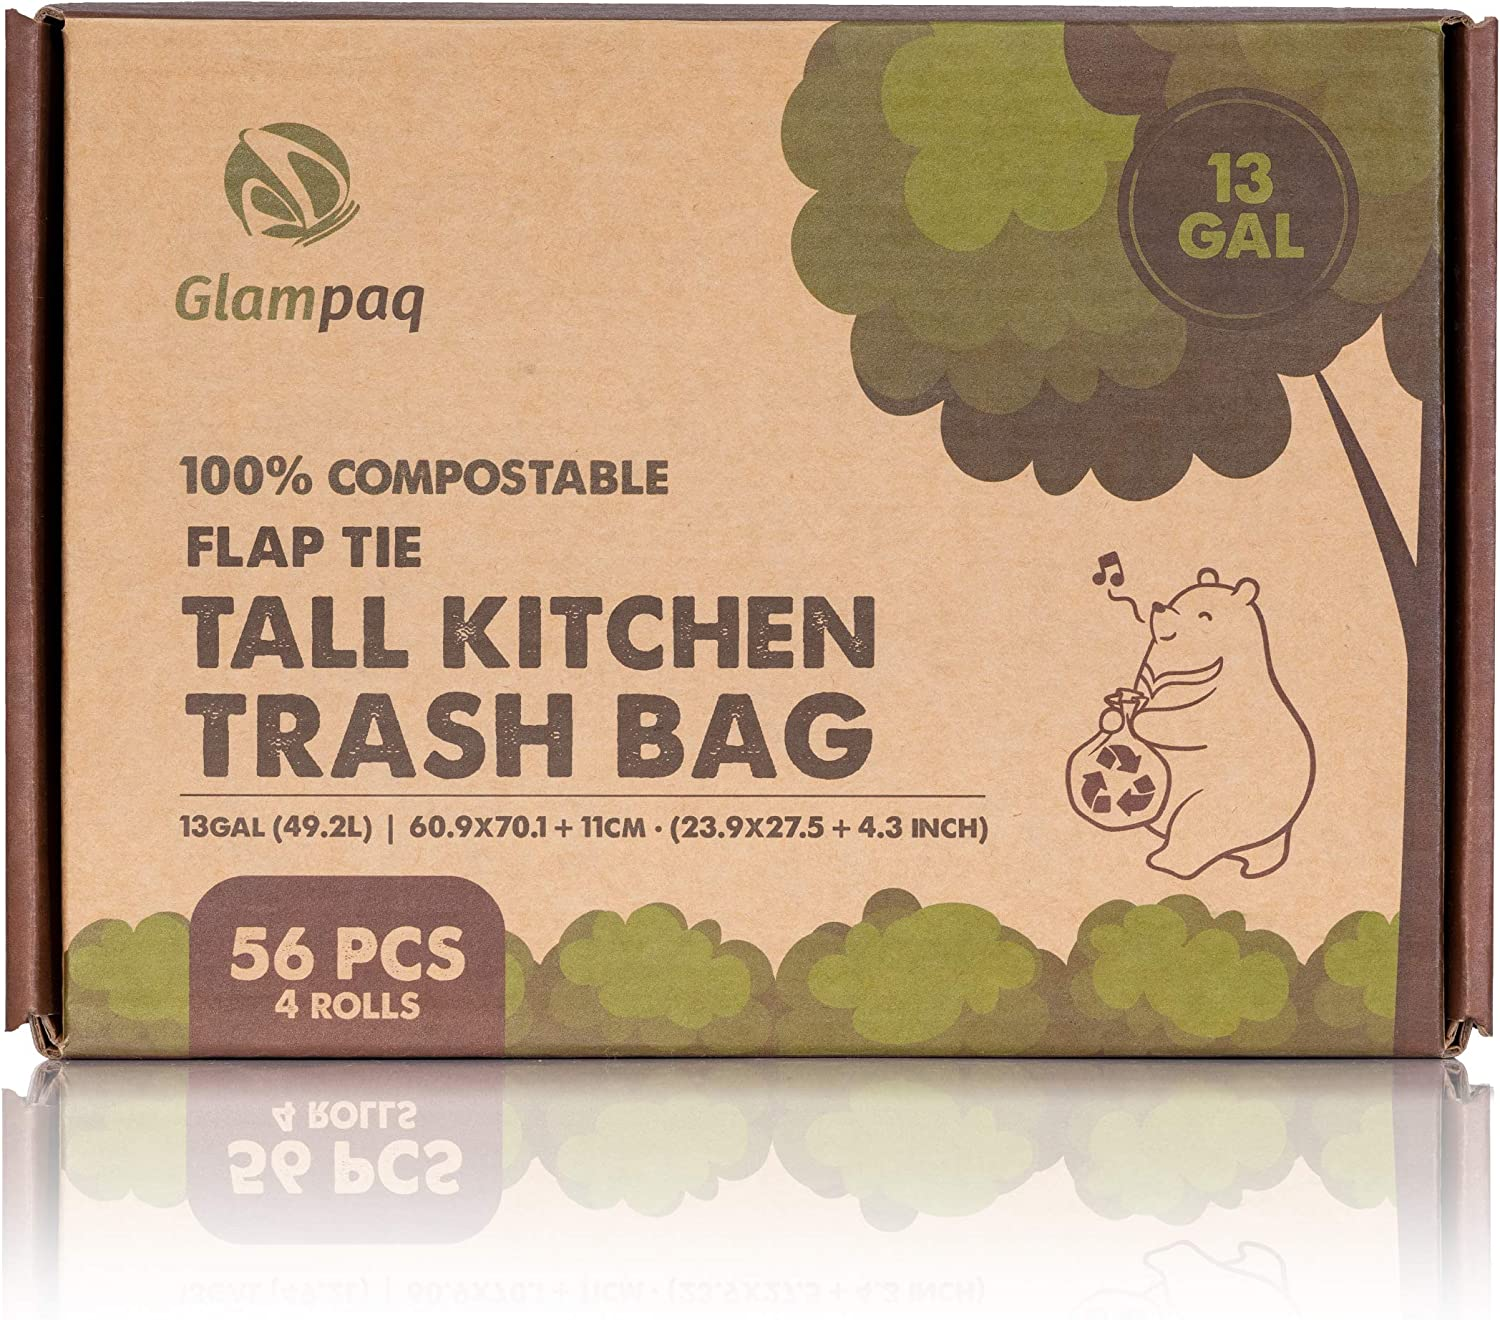 100% Shipping included Compostable Biodegradable Trash Bag Tall Kitchen 13 Recommended gallon